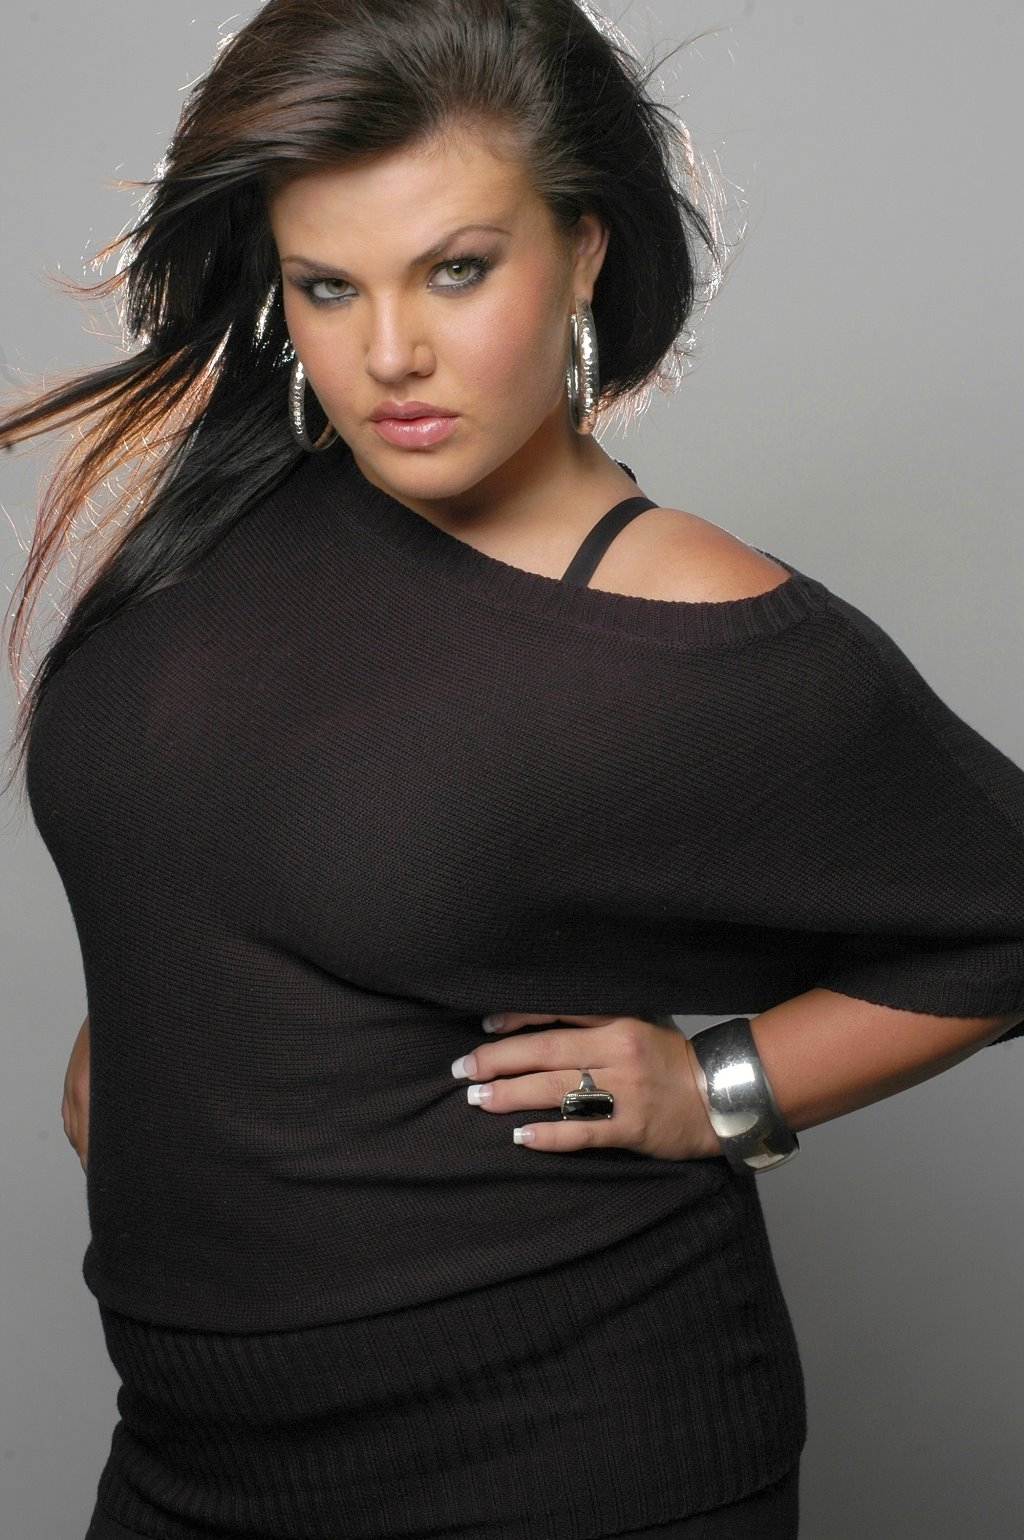 Hot plus size indian women